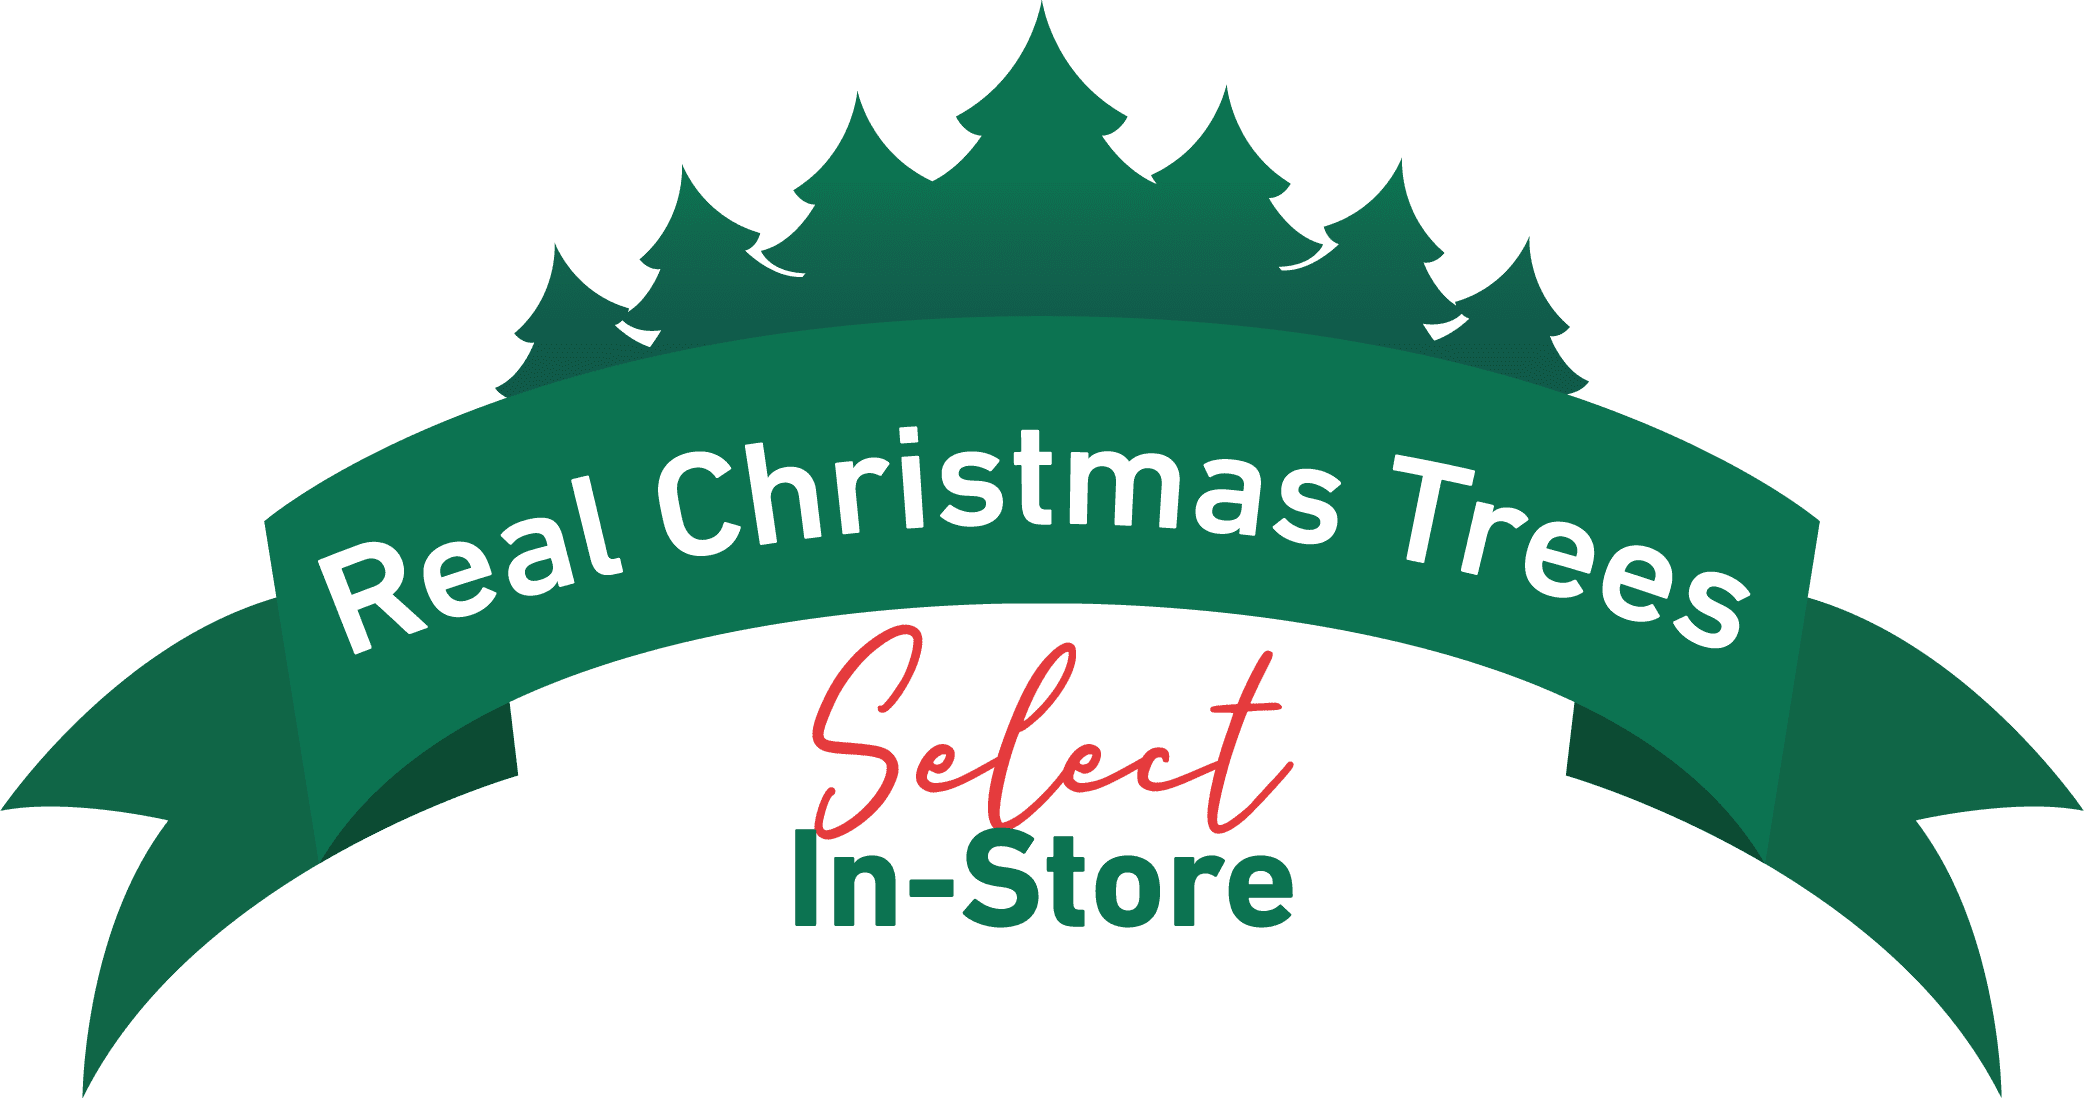 Real Christmas Trees - Select In-Store